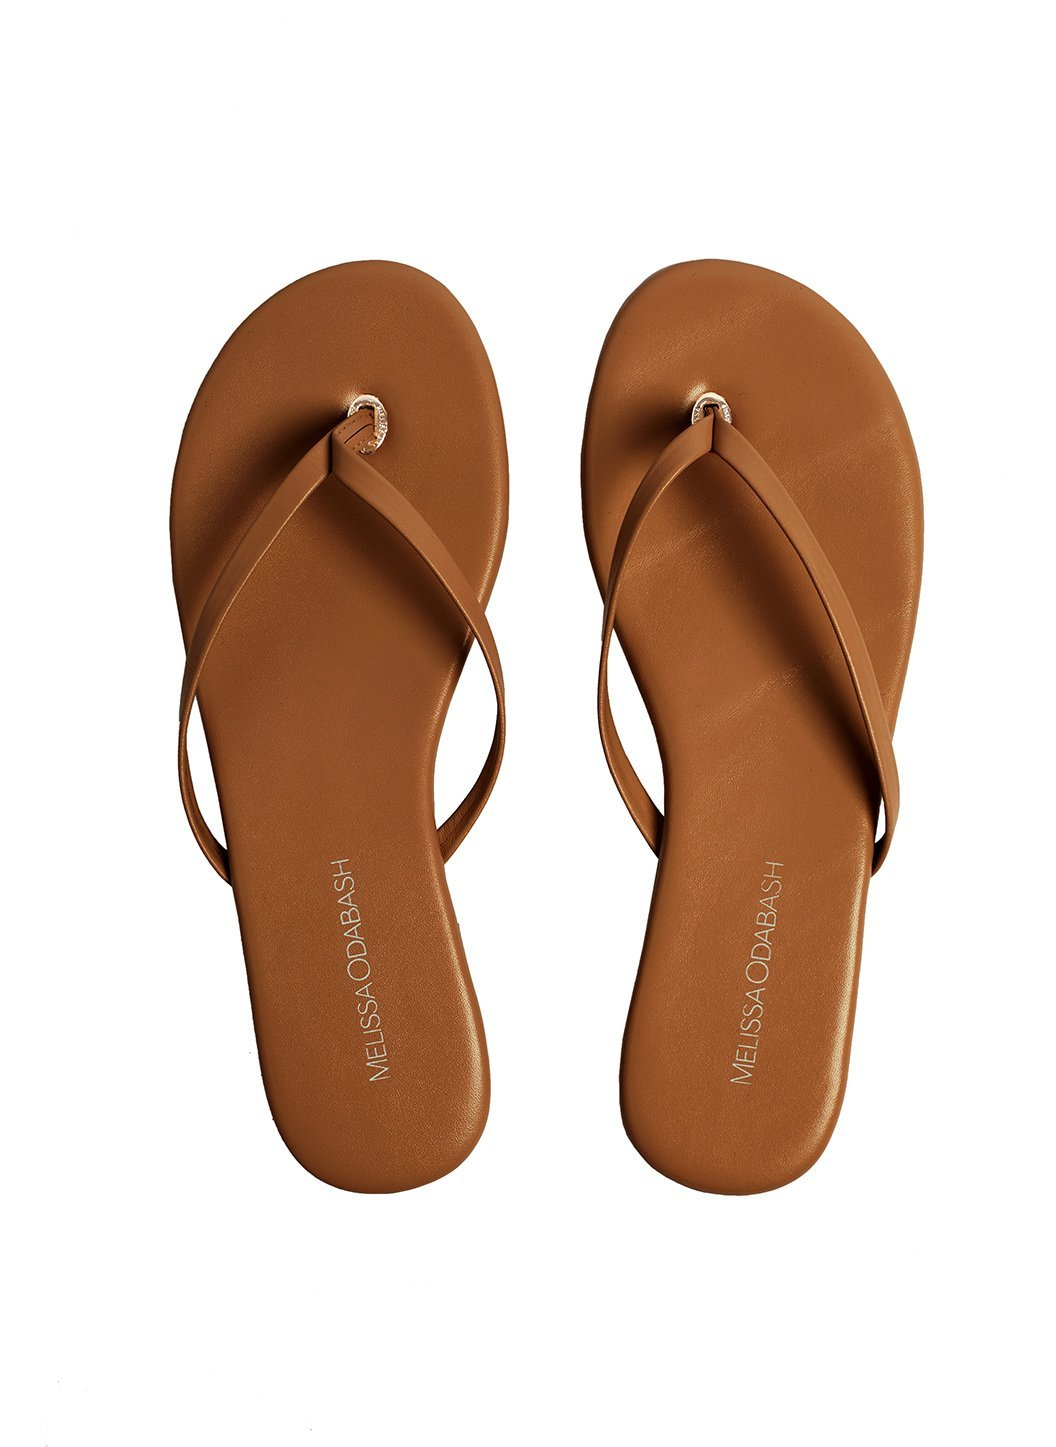 Leather Flip Flops Tan